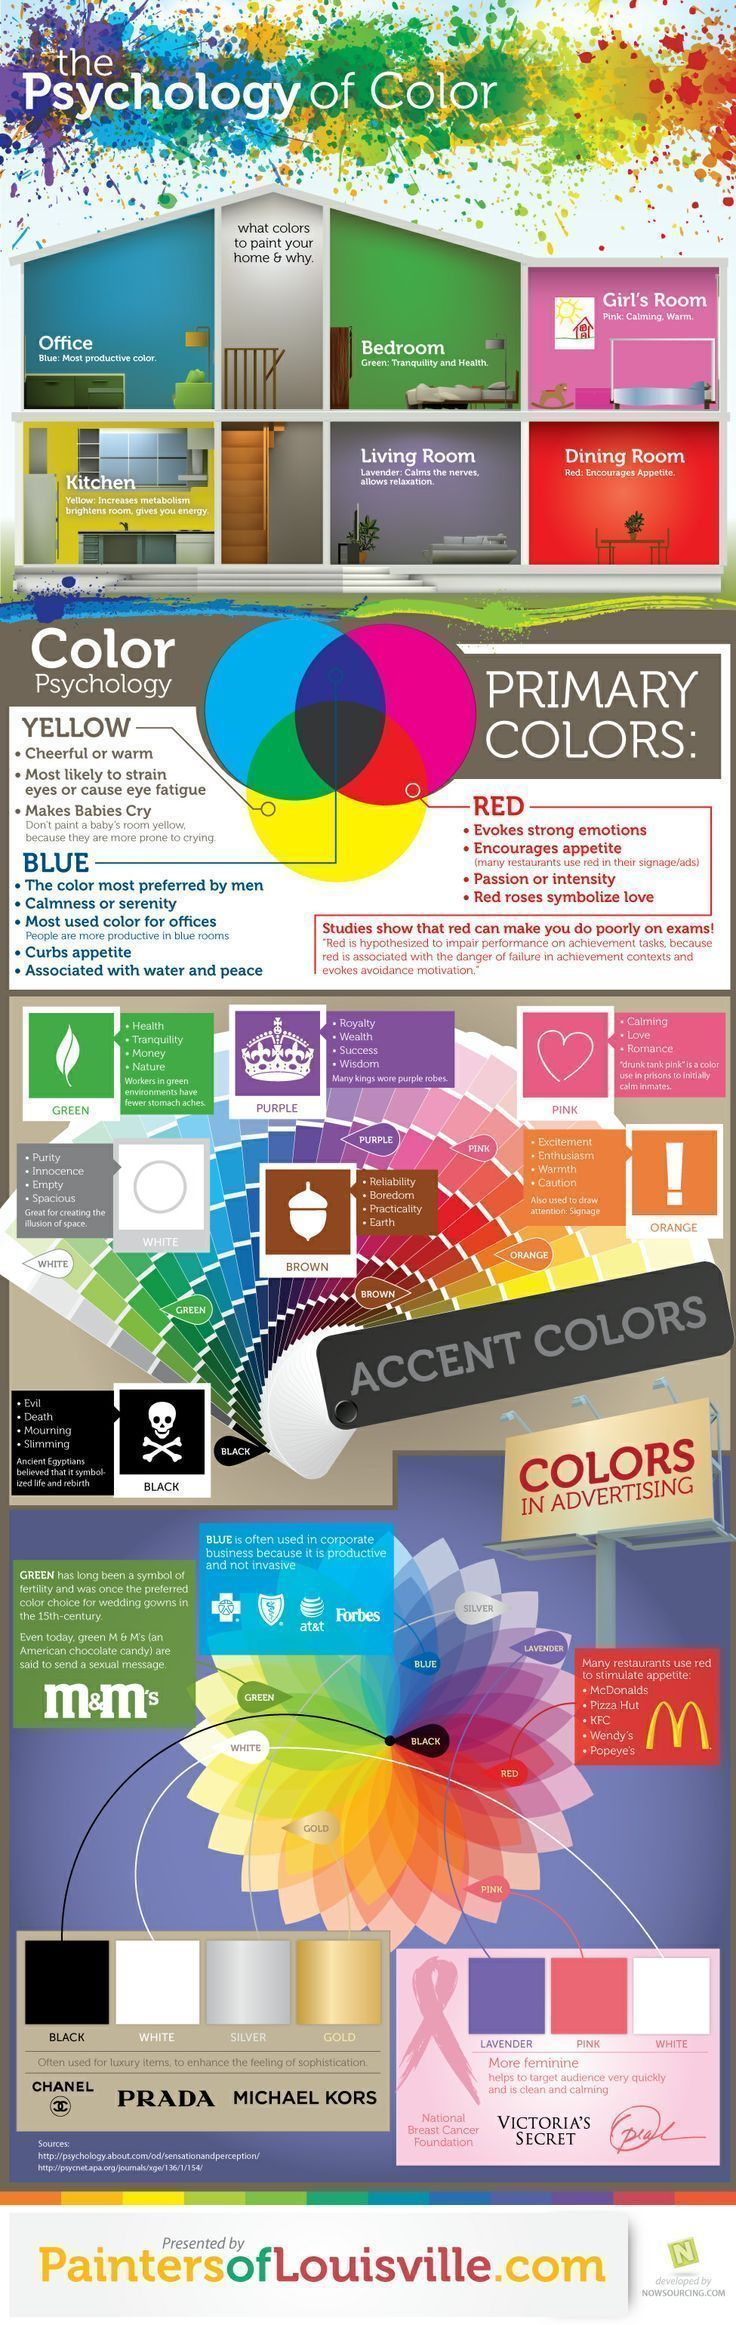 Interior Design Color Chart Cheat Sheet Catchy Slogans And Advertising Taglines